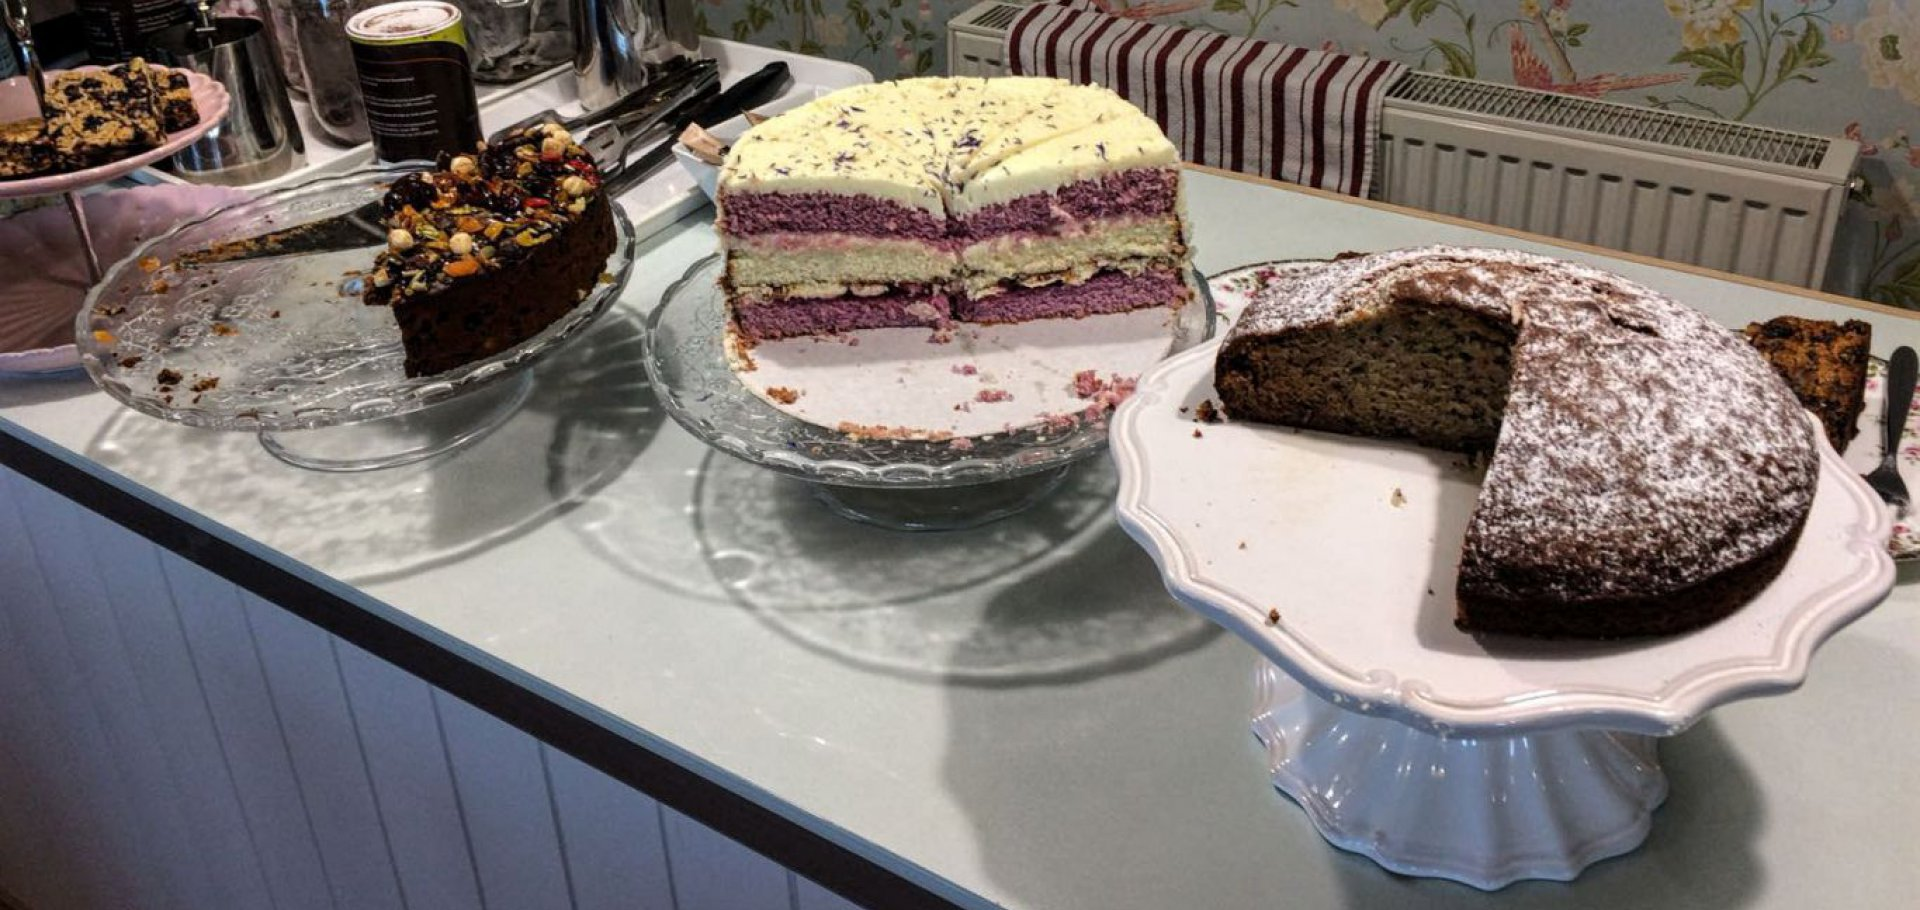 Cakes at the Ark Cafe Kippford Dumfries and Galloway